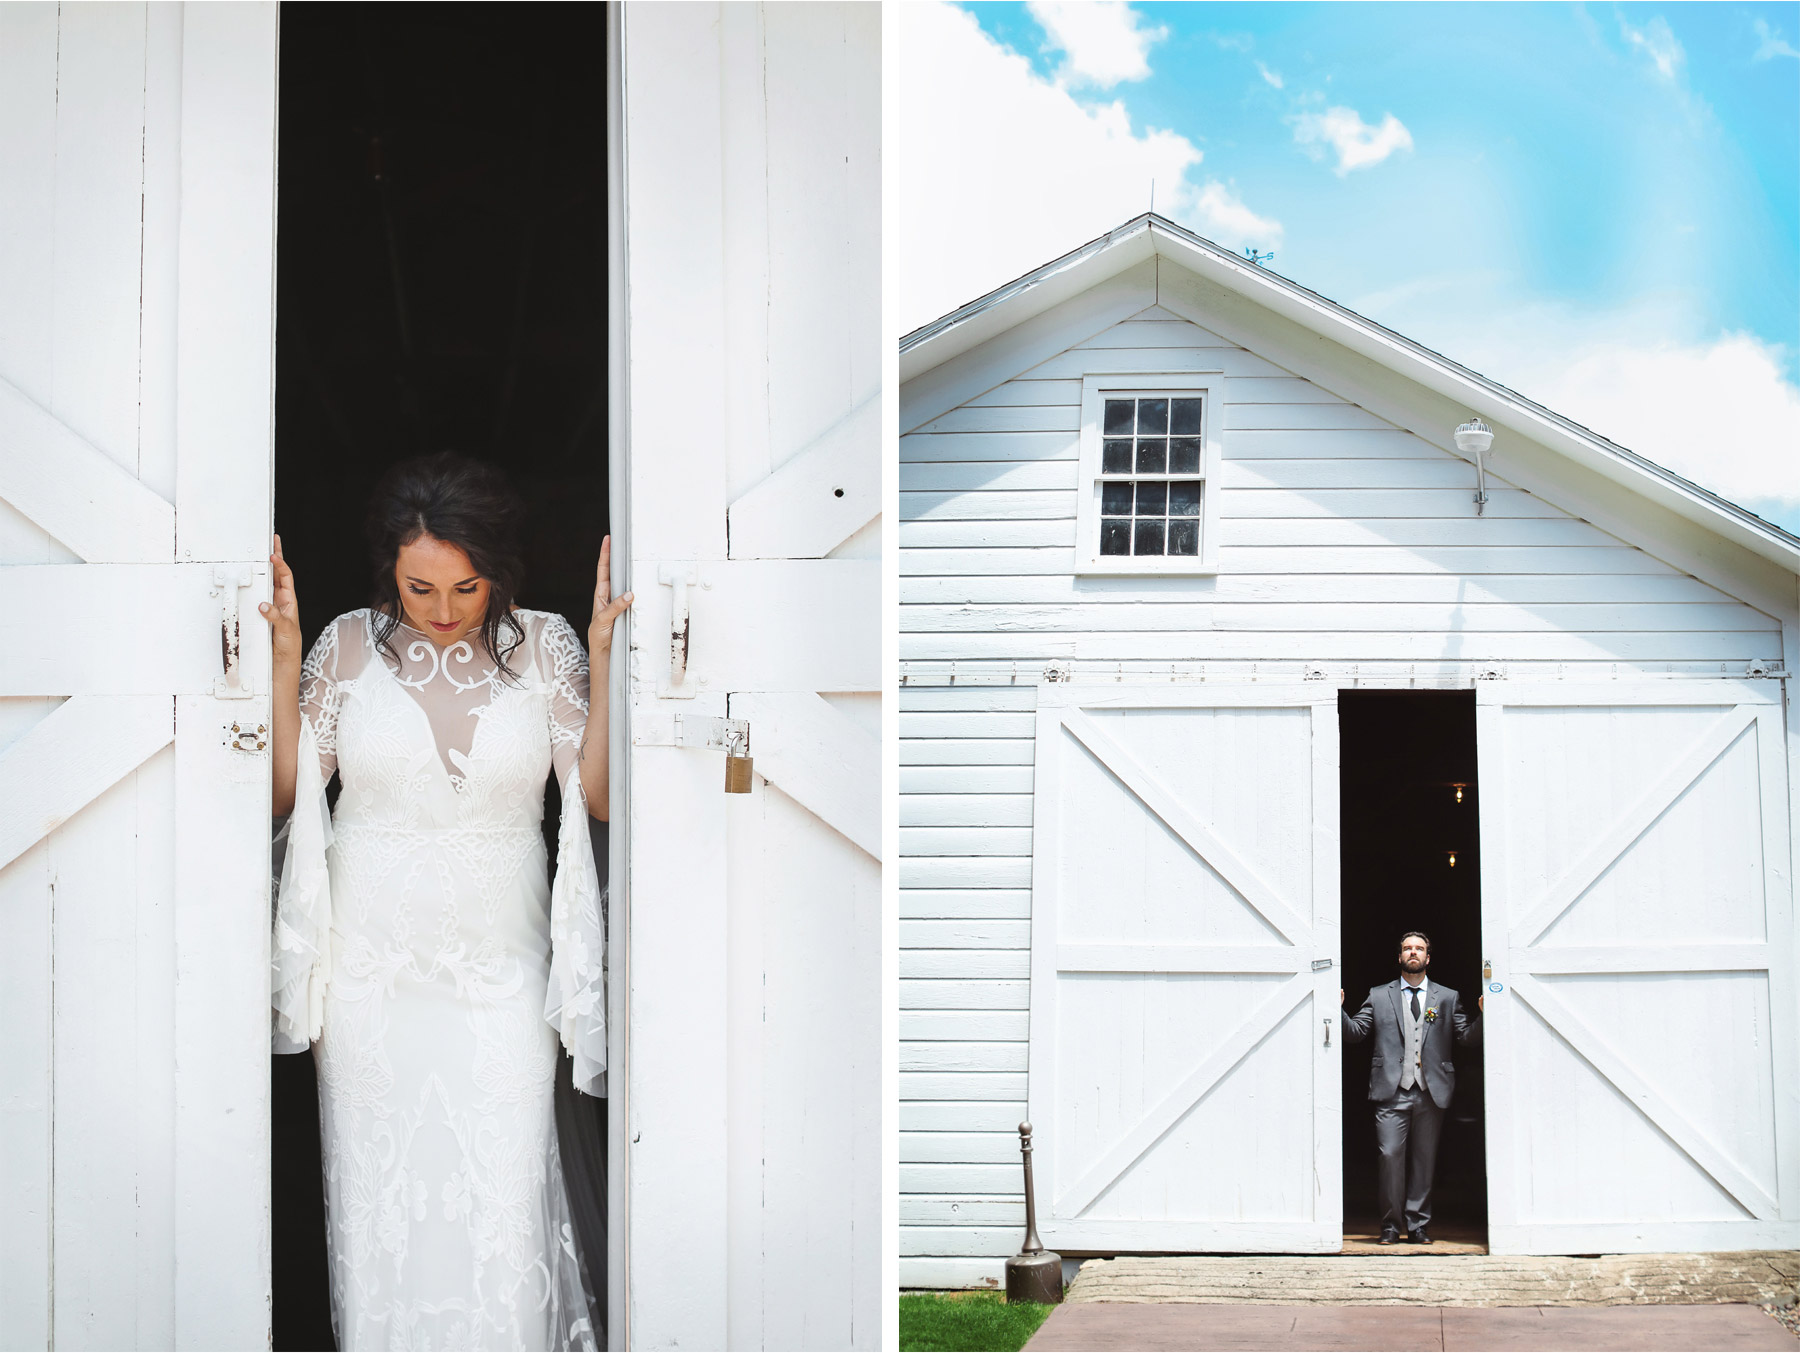 05-Vick-Photography-Rochester-Minnesota-Mayowood-Stone-Barn-Country-Wedding-White-Doors-Bride-Groom-Lizz-and-Brady.jpg